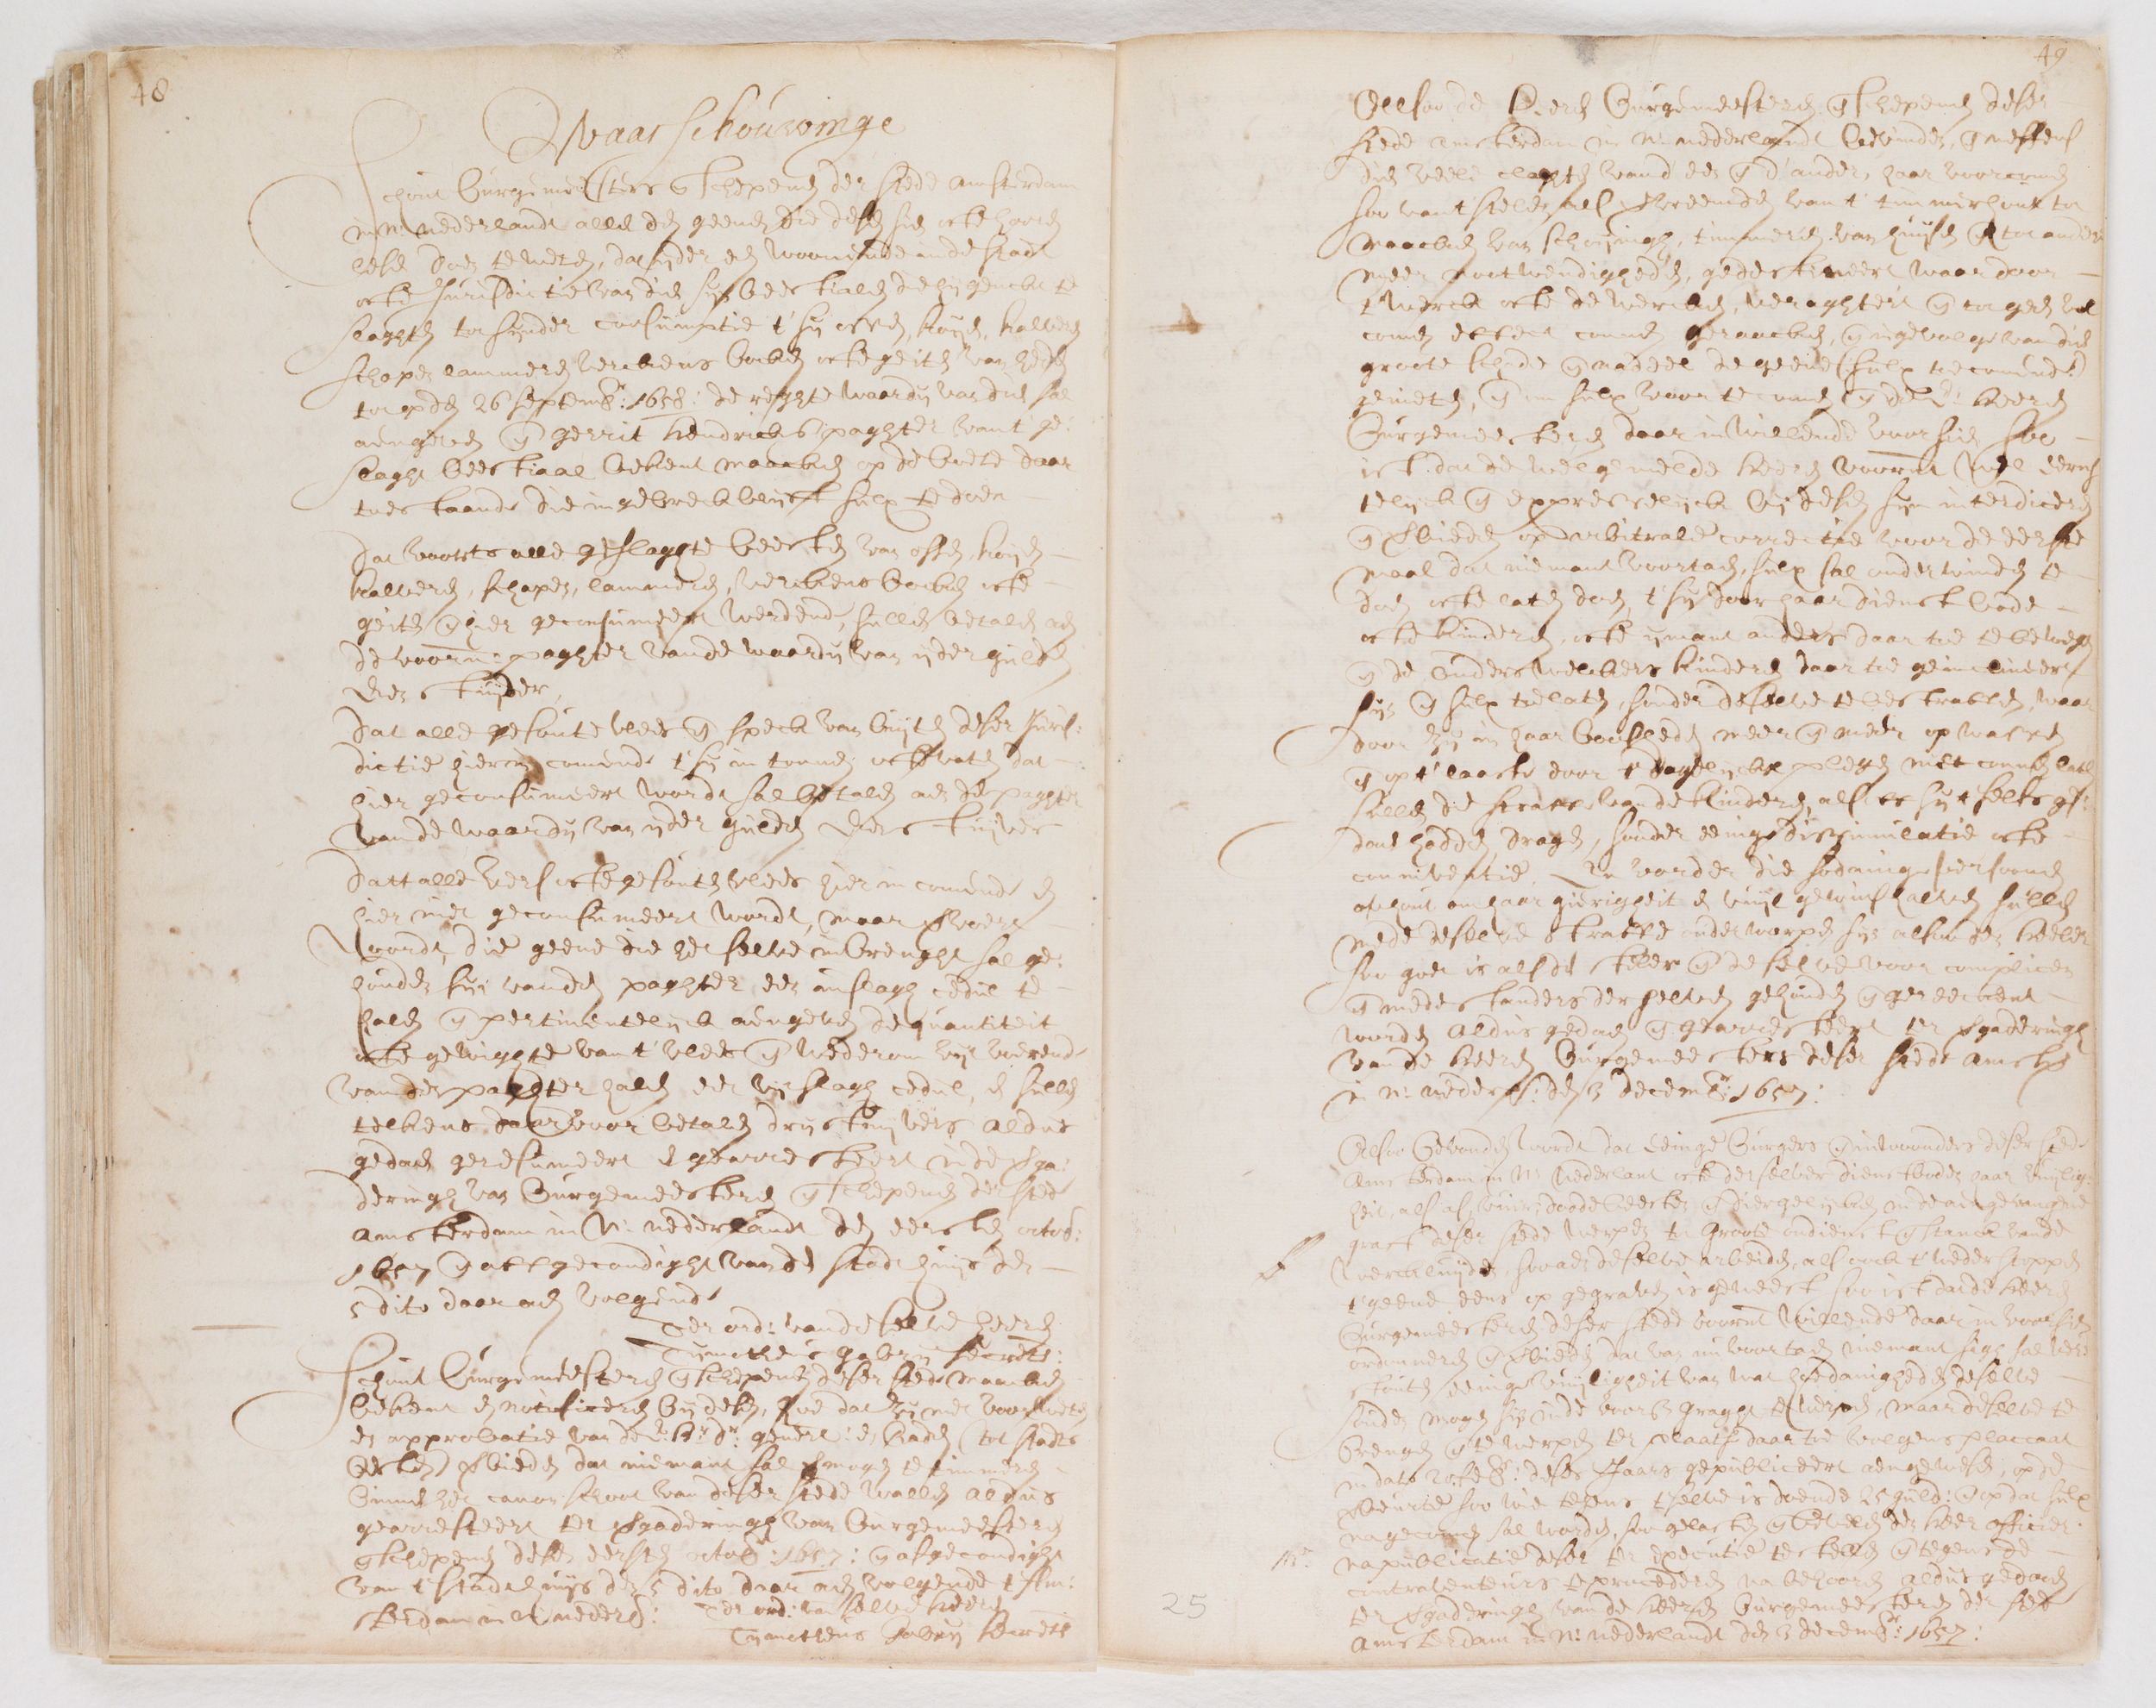 Ordinances of New Amsterdam, page 48-49